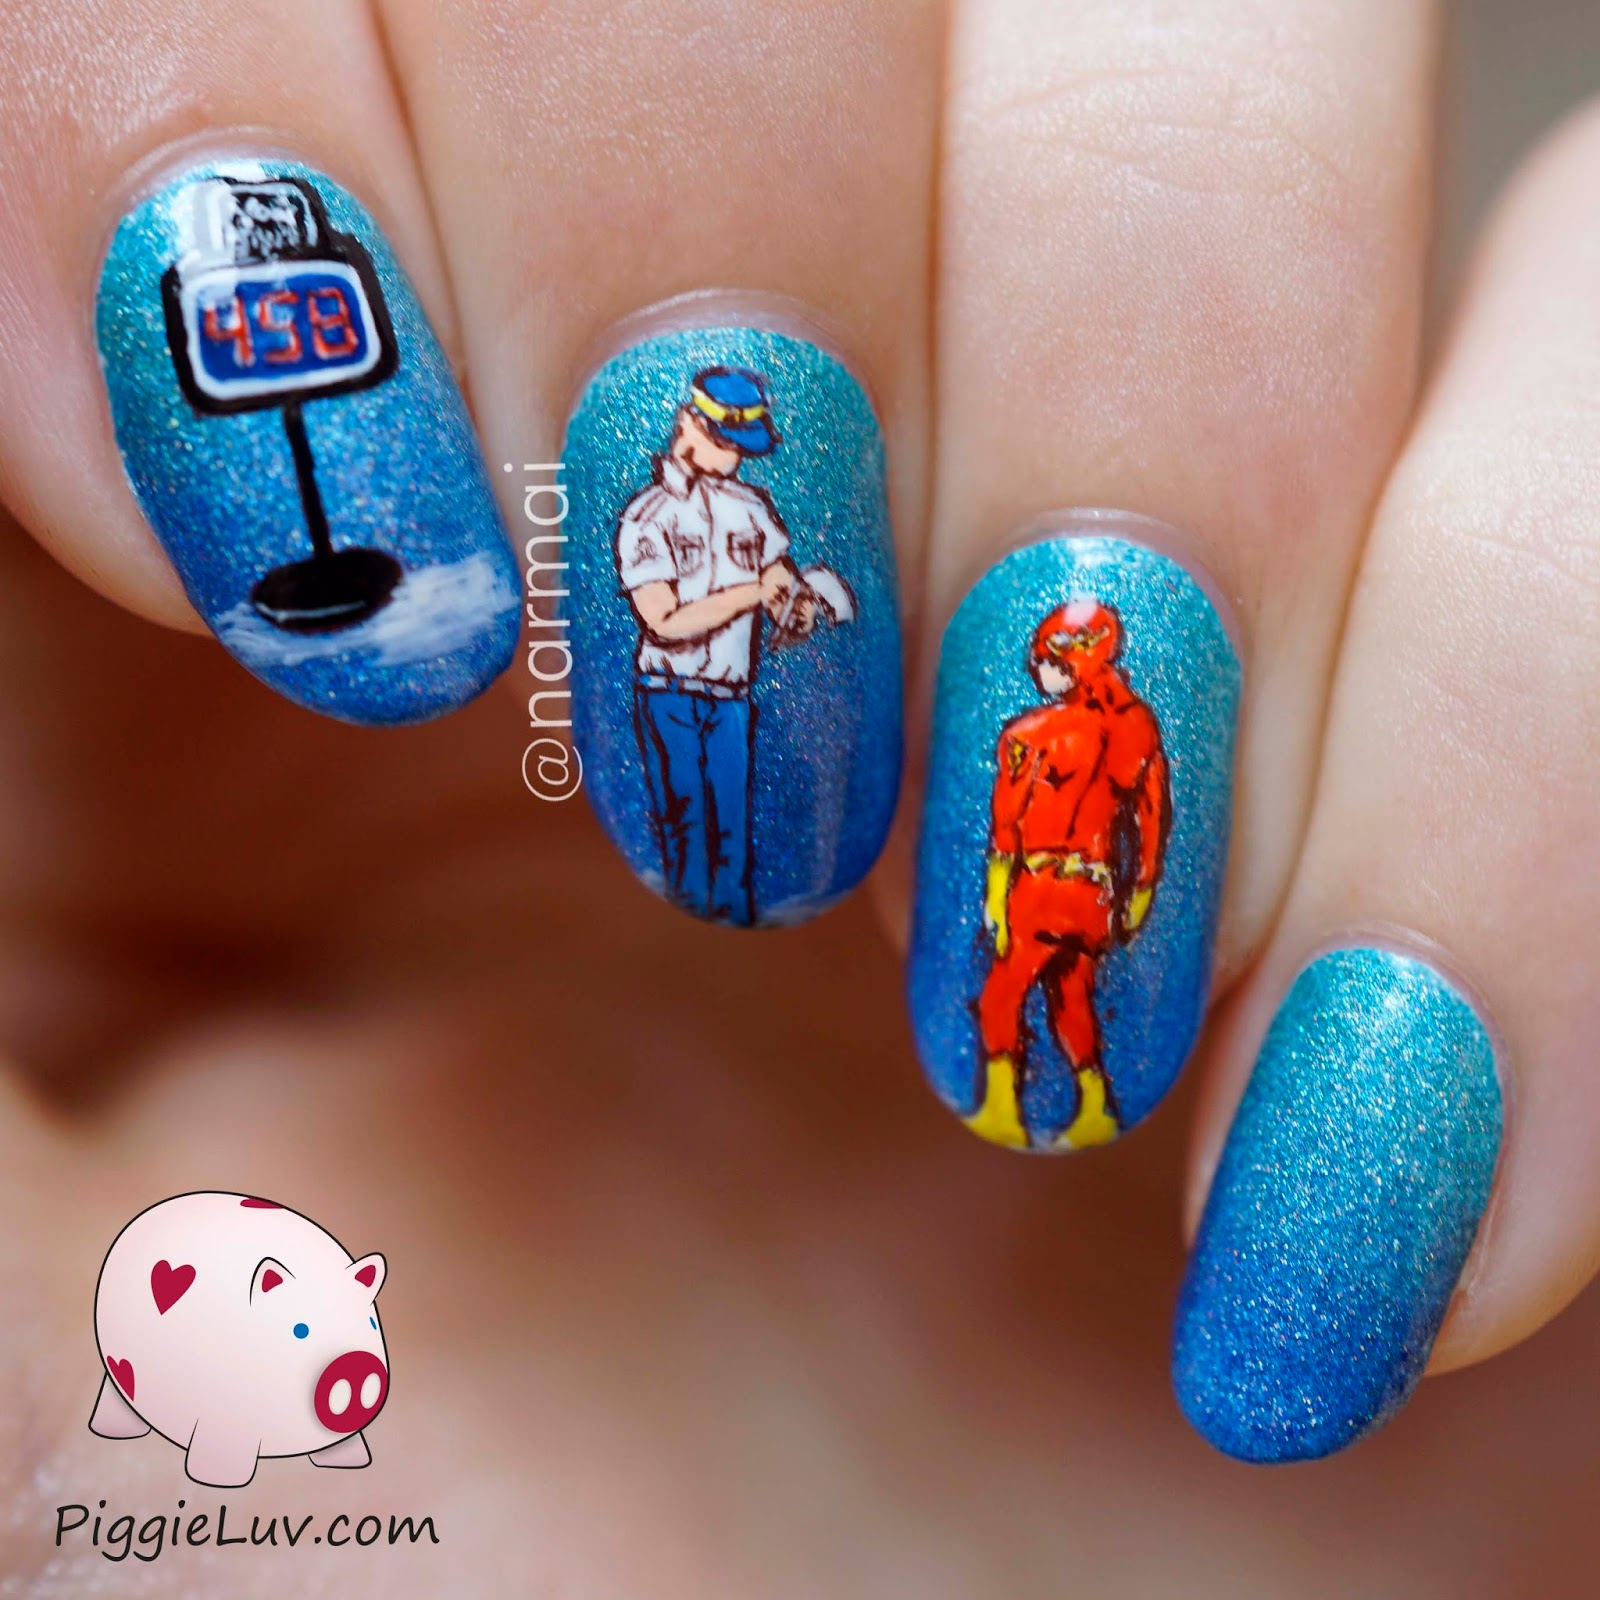 PiggieLuv: The Flash getting a ticket, freehand nail art